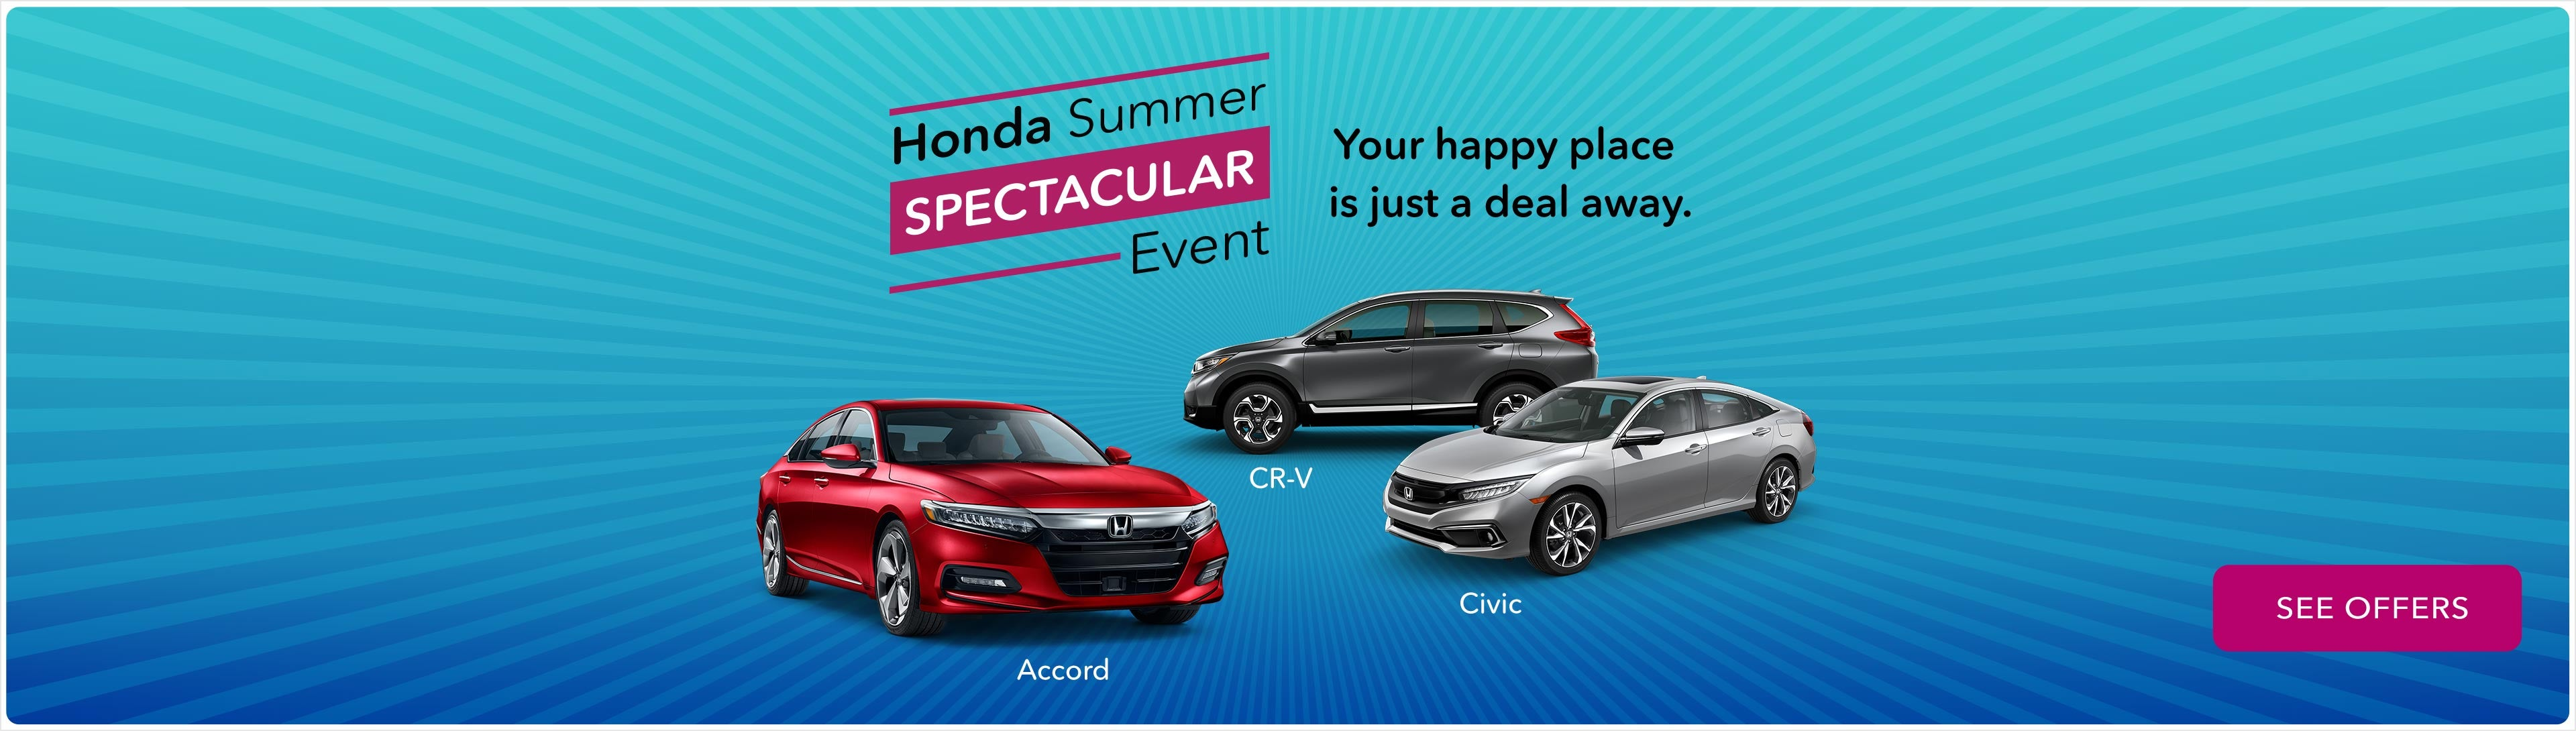 Edison Honda dealer in Edison NJ - New and Used Honda dealership